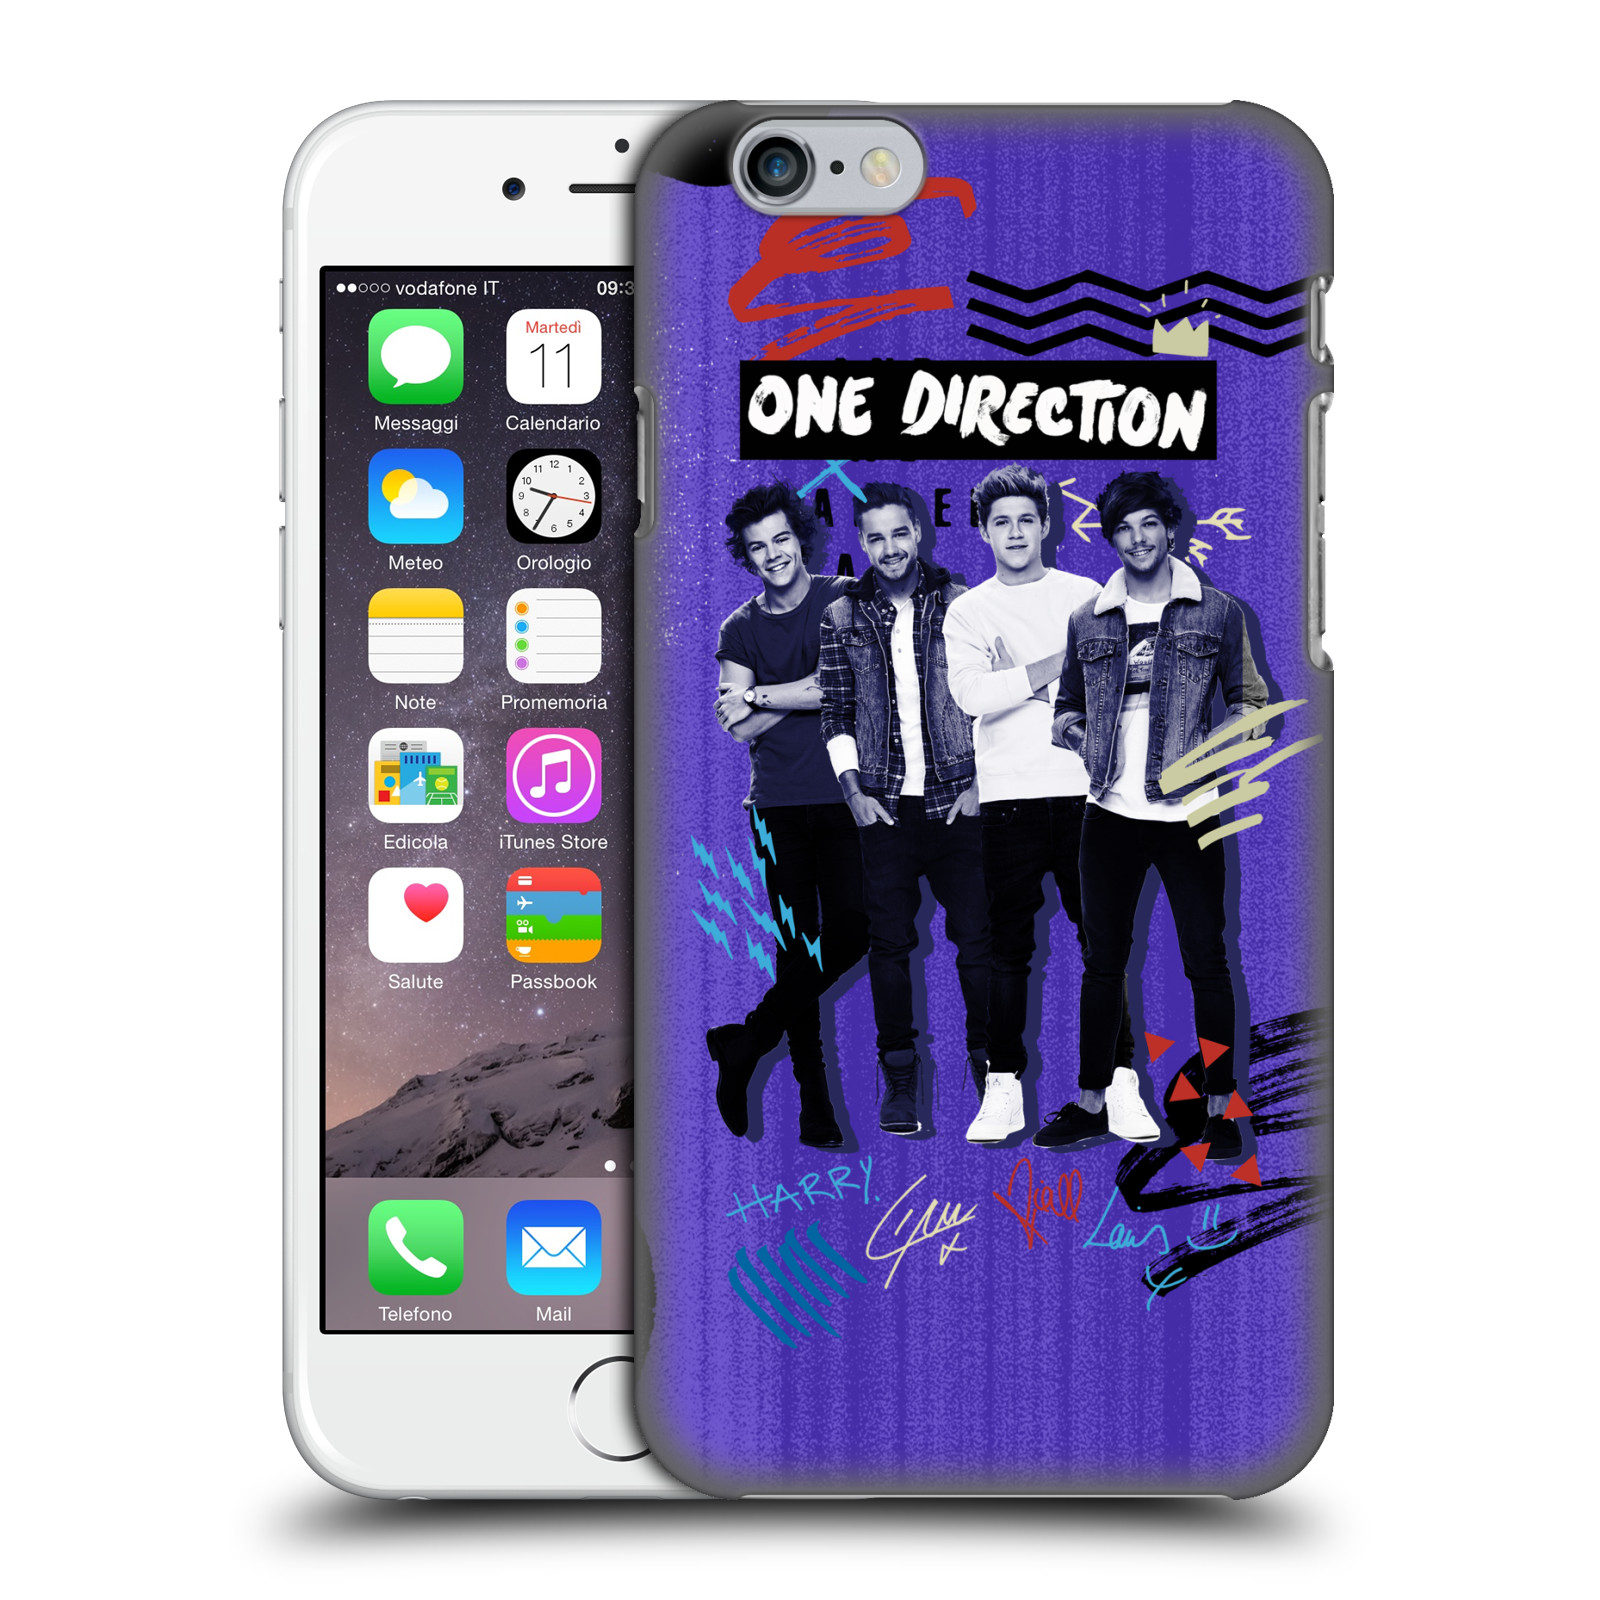 Ufficiale-One-Direction-1D-fan-POSTER-HARD-BACK-CASE-per-APPLE-iPhone-telefoni